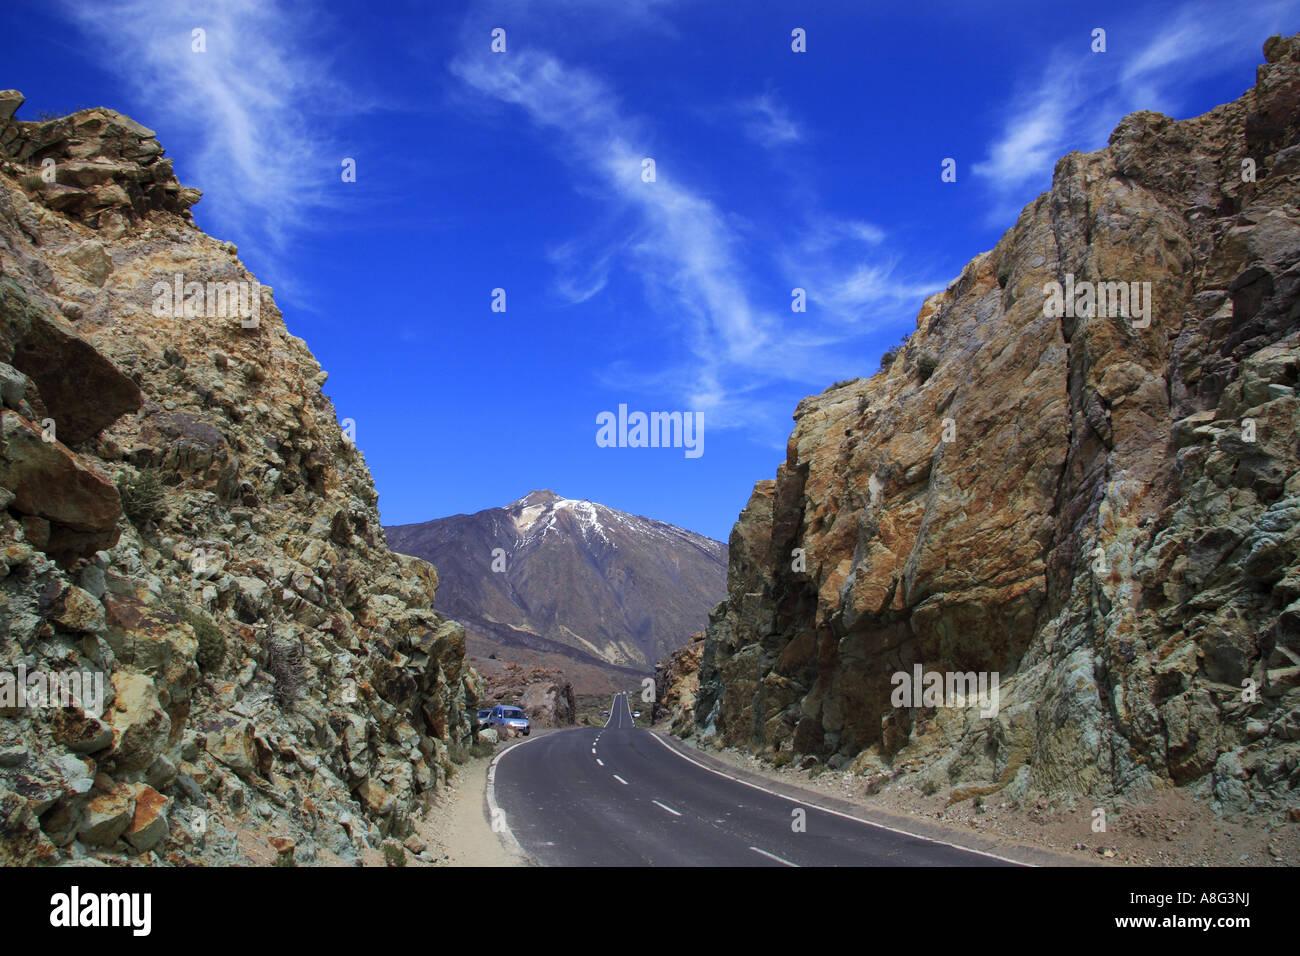 Mount Teide Highest mountain in Spain located in Tenerife Canary Islands seen from Los Azulejos - Stock Image